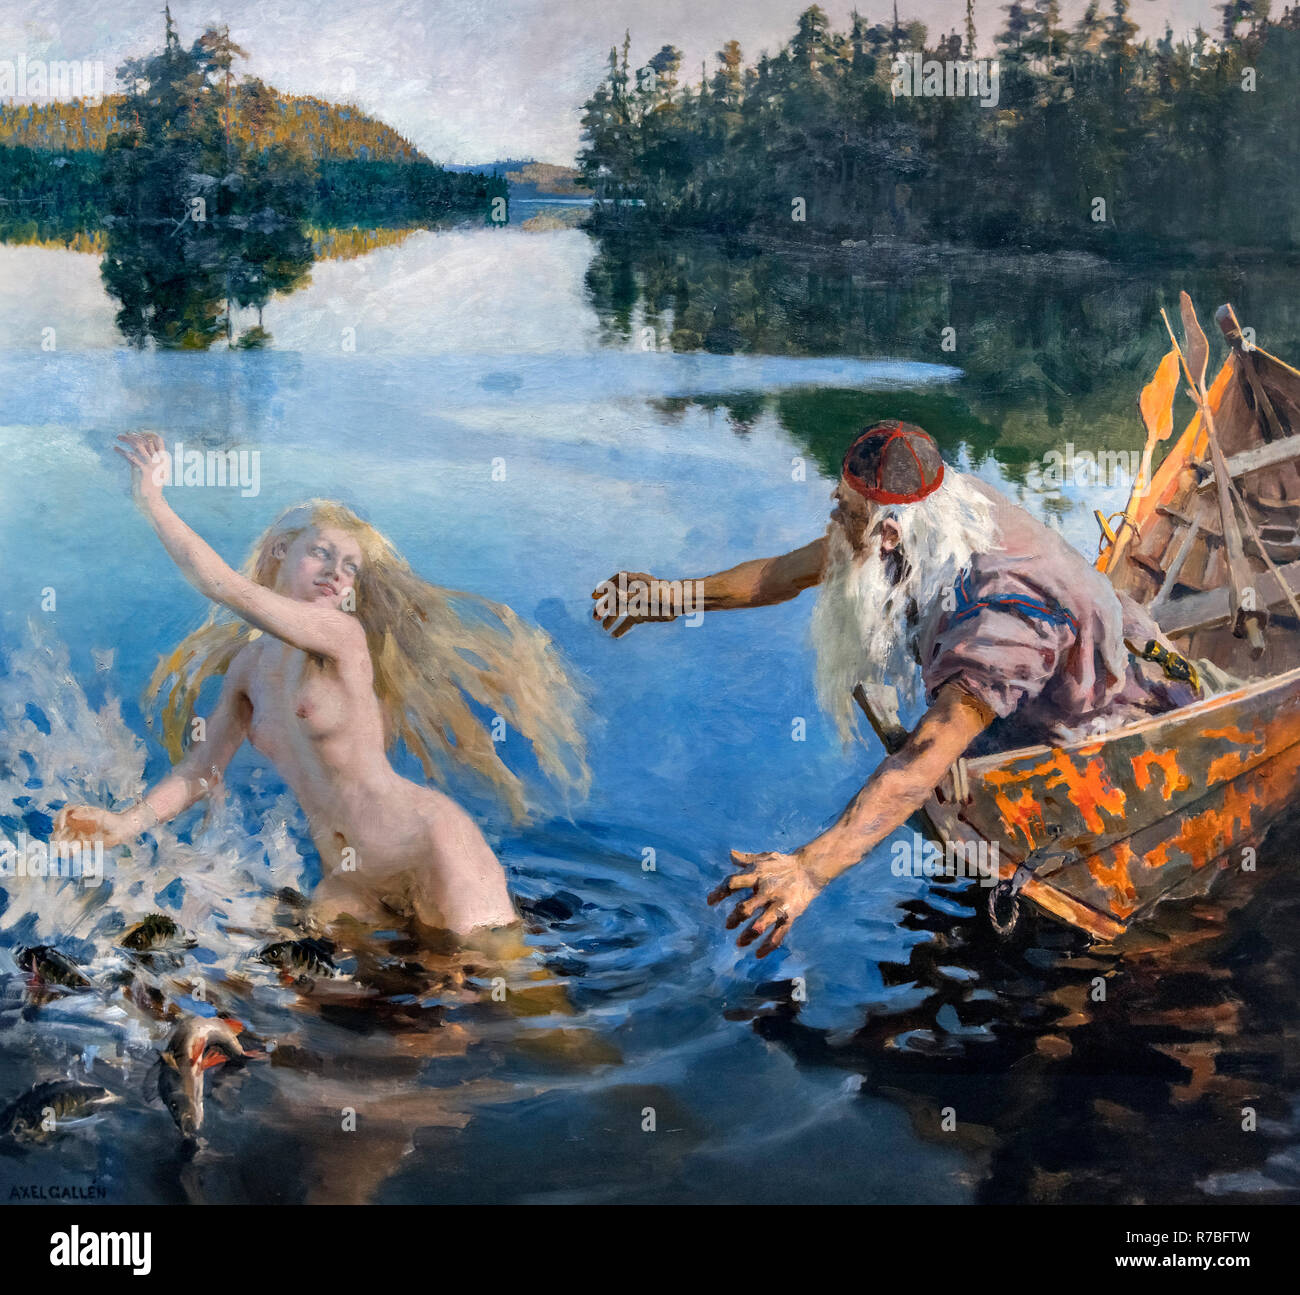 The Aino Myth triptych by Akseli Gallen-Kallela (1865-1931), oil on canvas, 1891. The painting, depicting Väinämöinen and Aino, is a story from the Finnish work of epic poetry, the Kalevala. Detail of the central panel of the triptych - full work can be seen as R7BFT5 - Stock Image